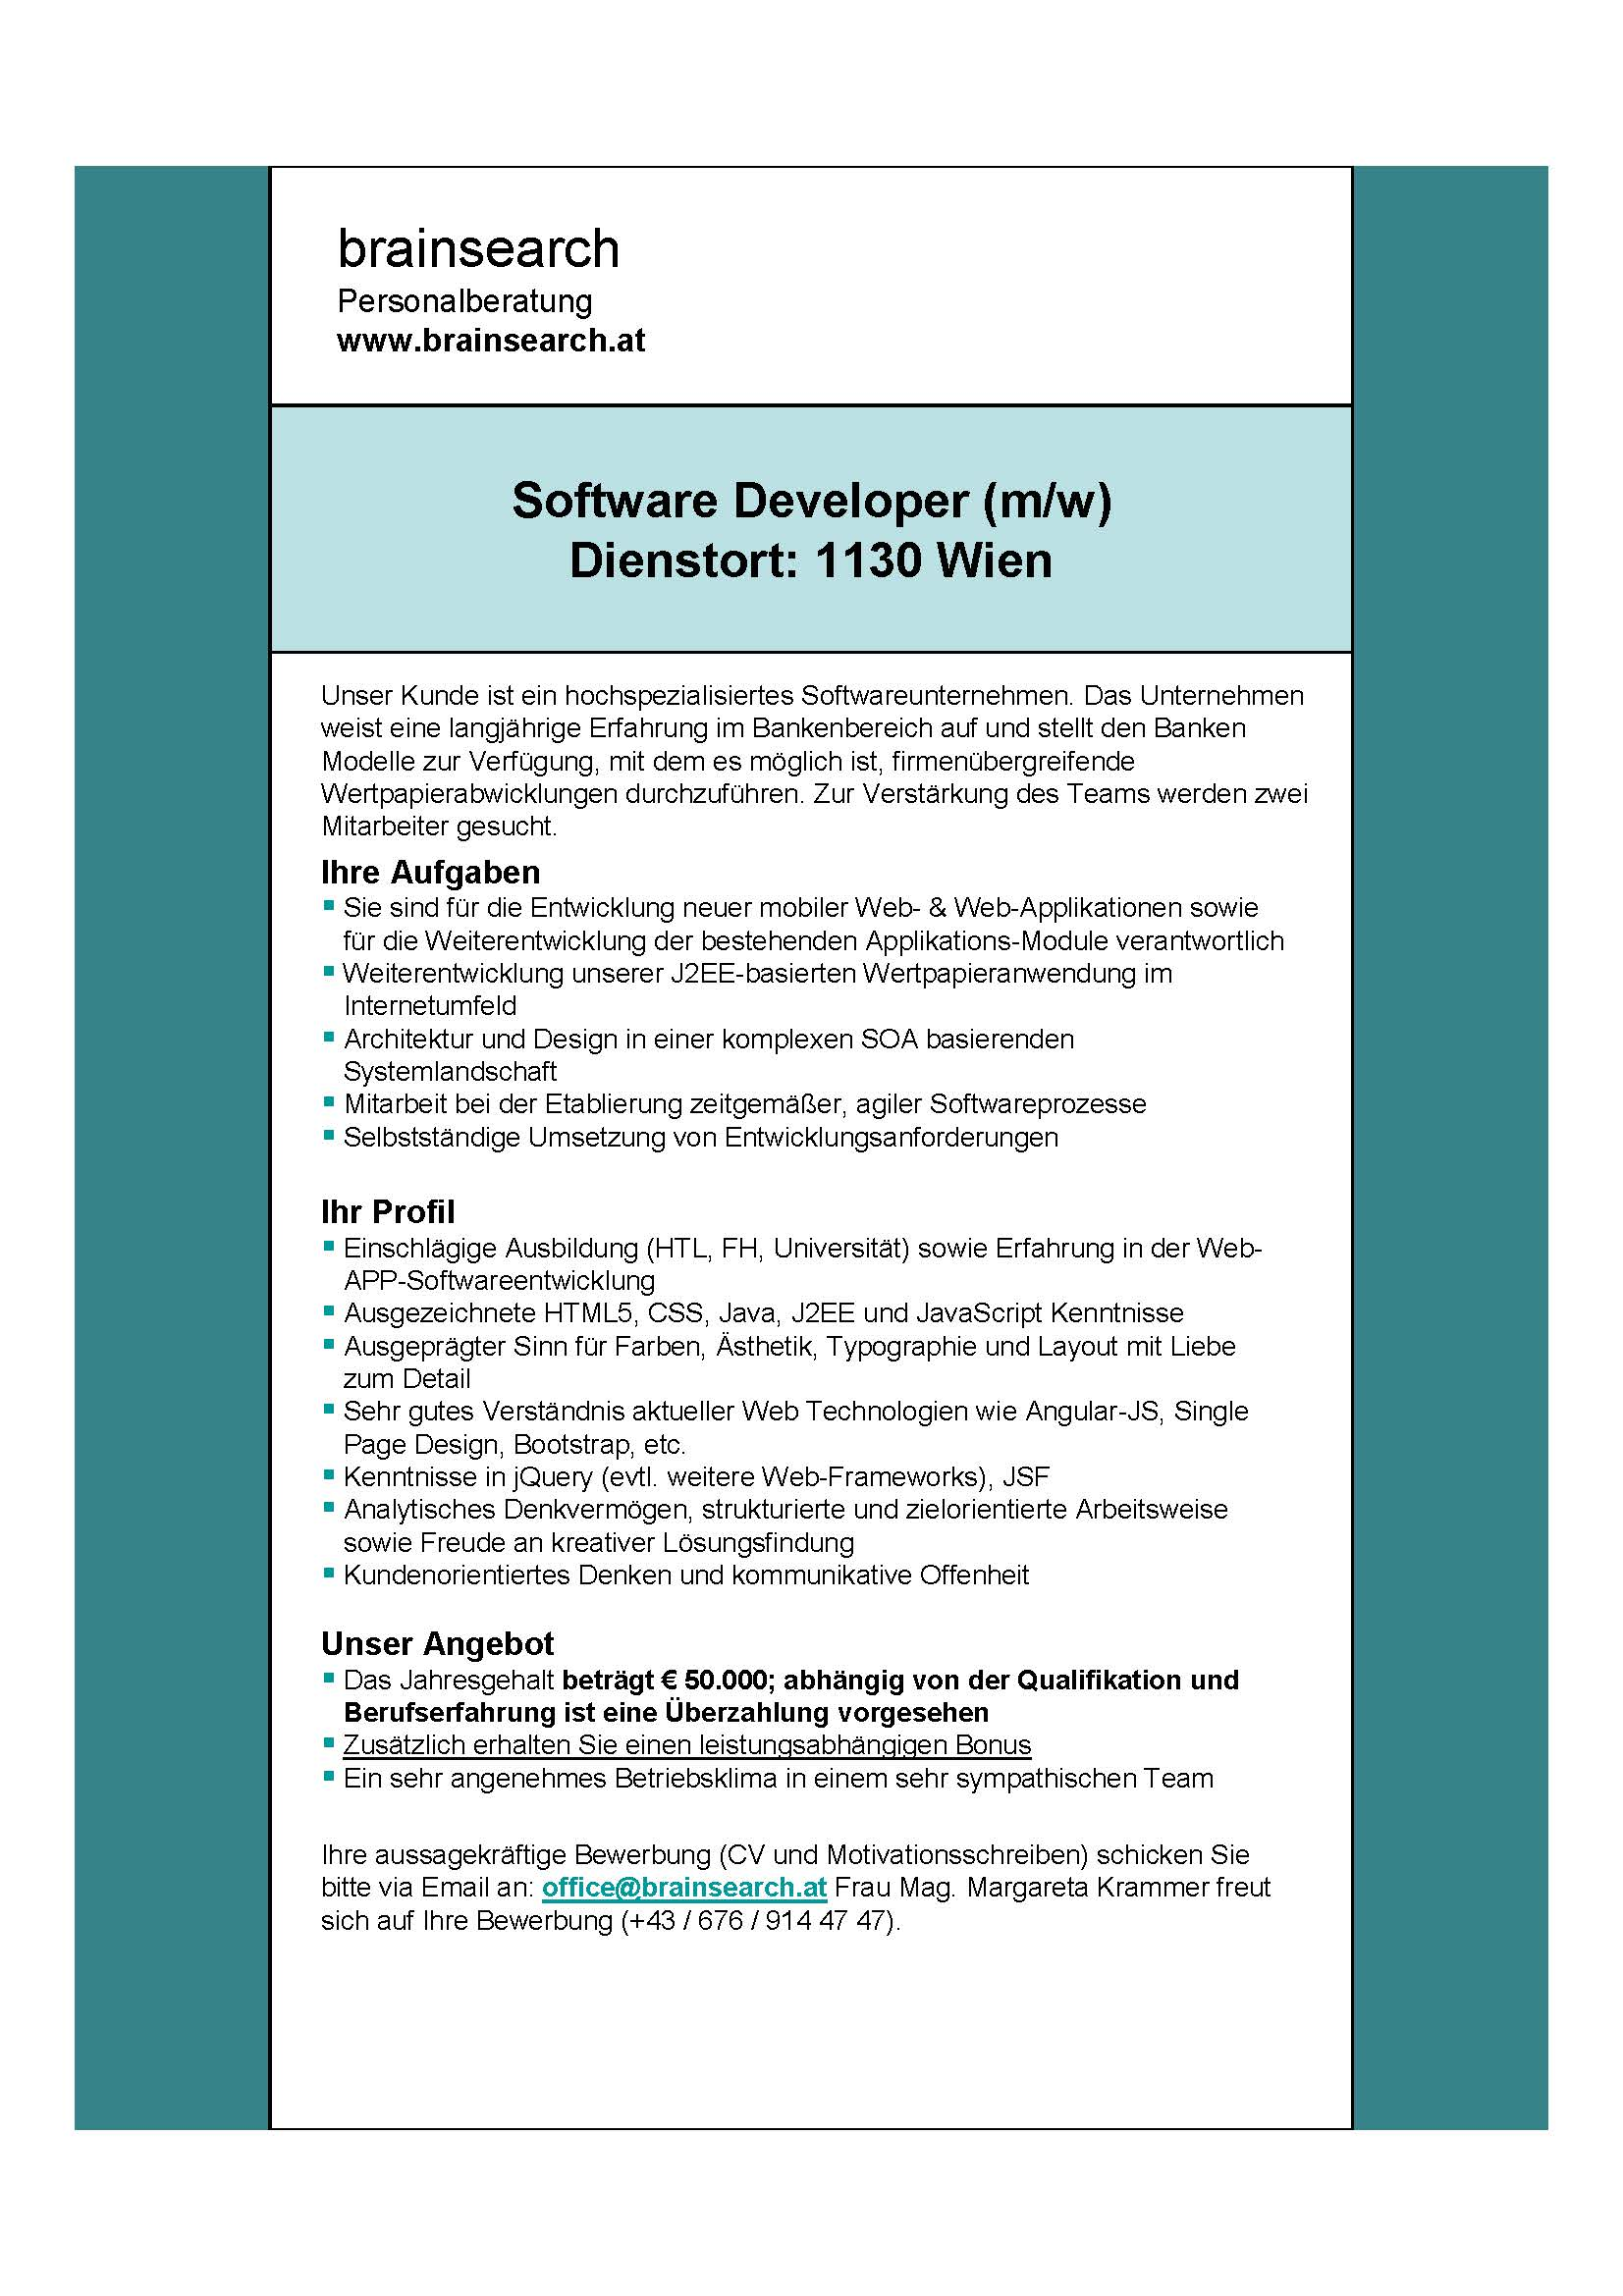 inserat karriere software developer